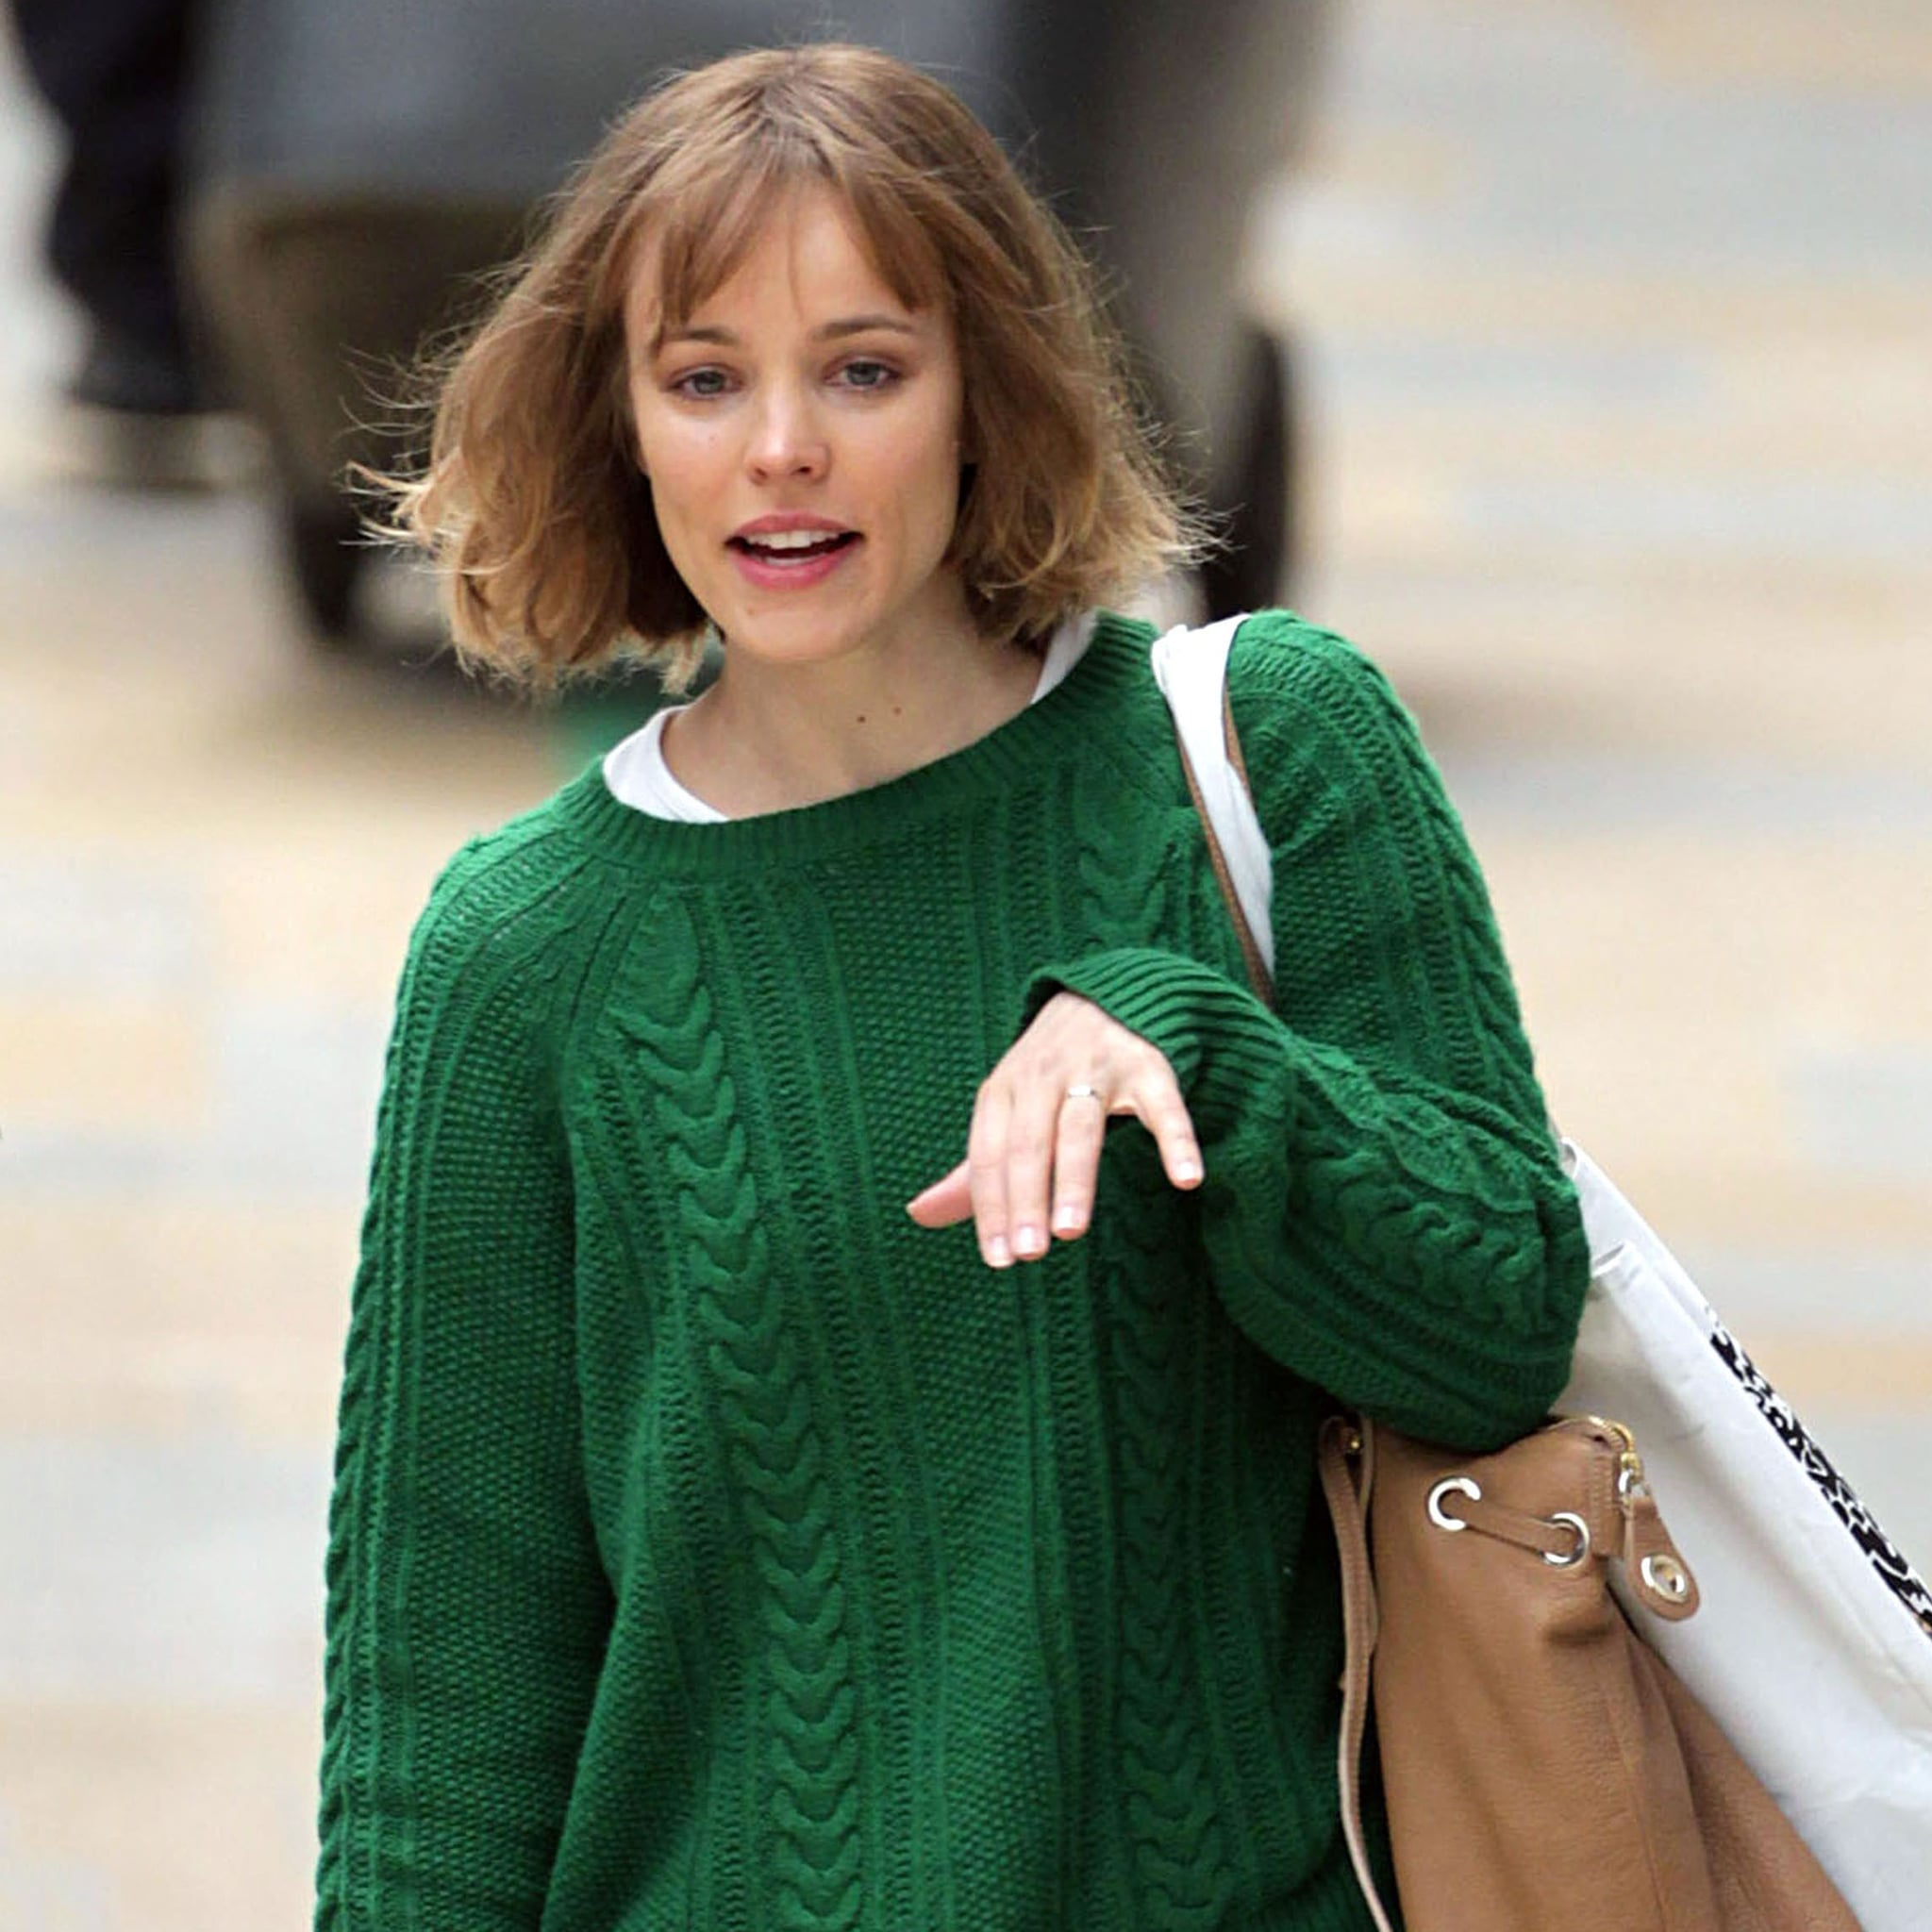 Rachel McAdams Wearing Green Sweater Pictures | POPSUGAR Celebrity